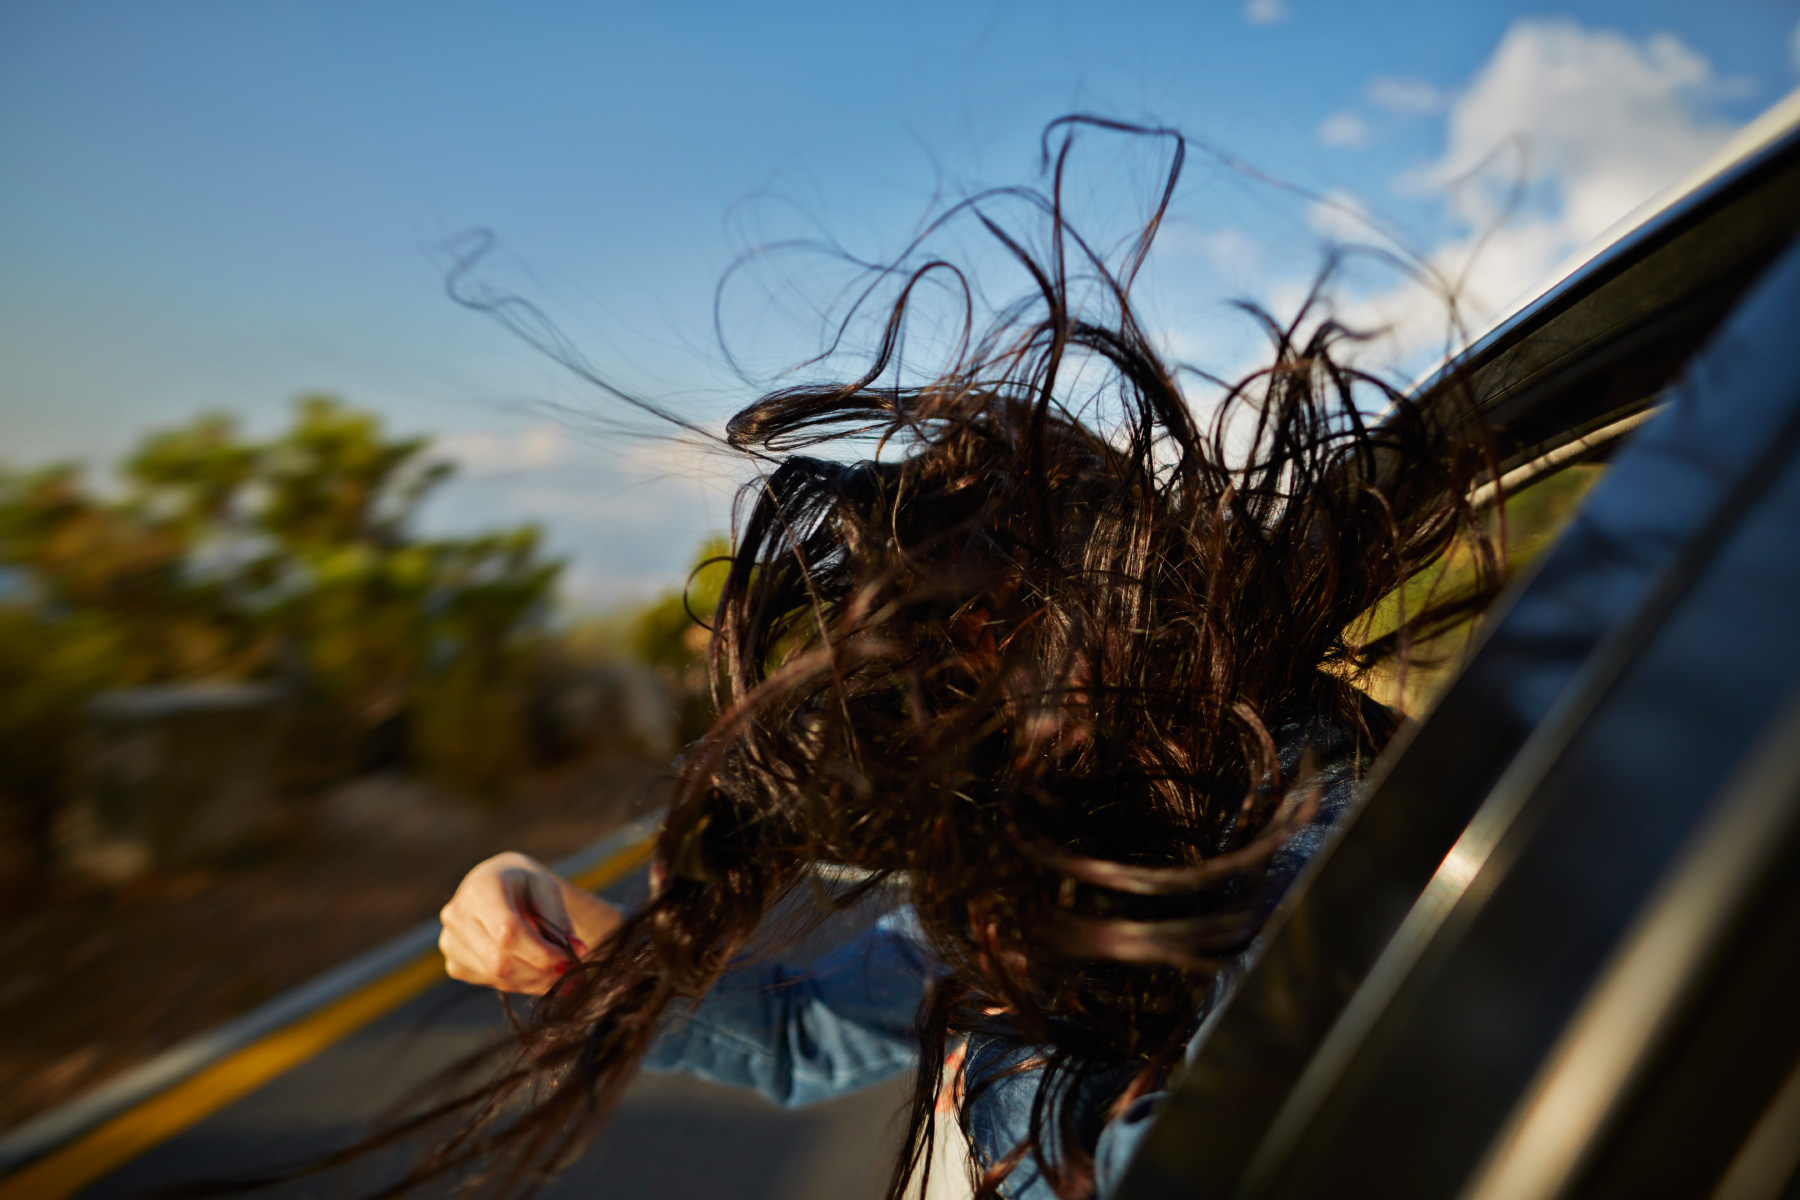 Long hair sticking out of car blowing in the wind